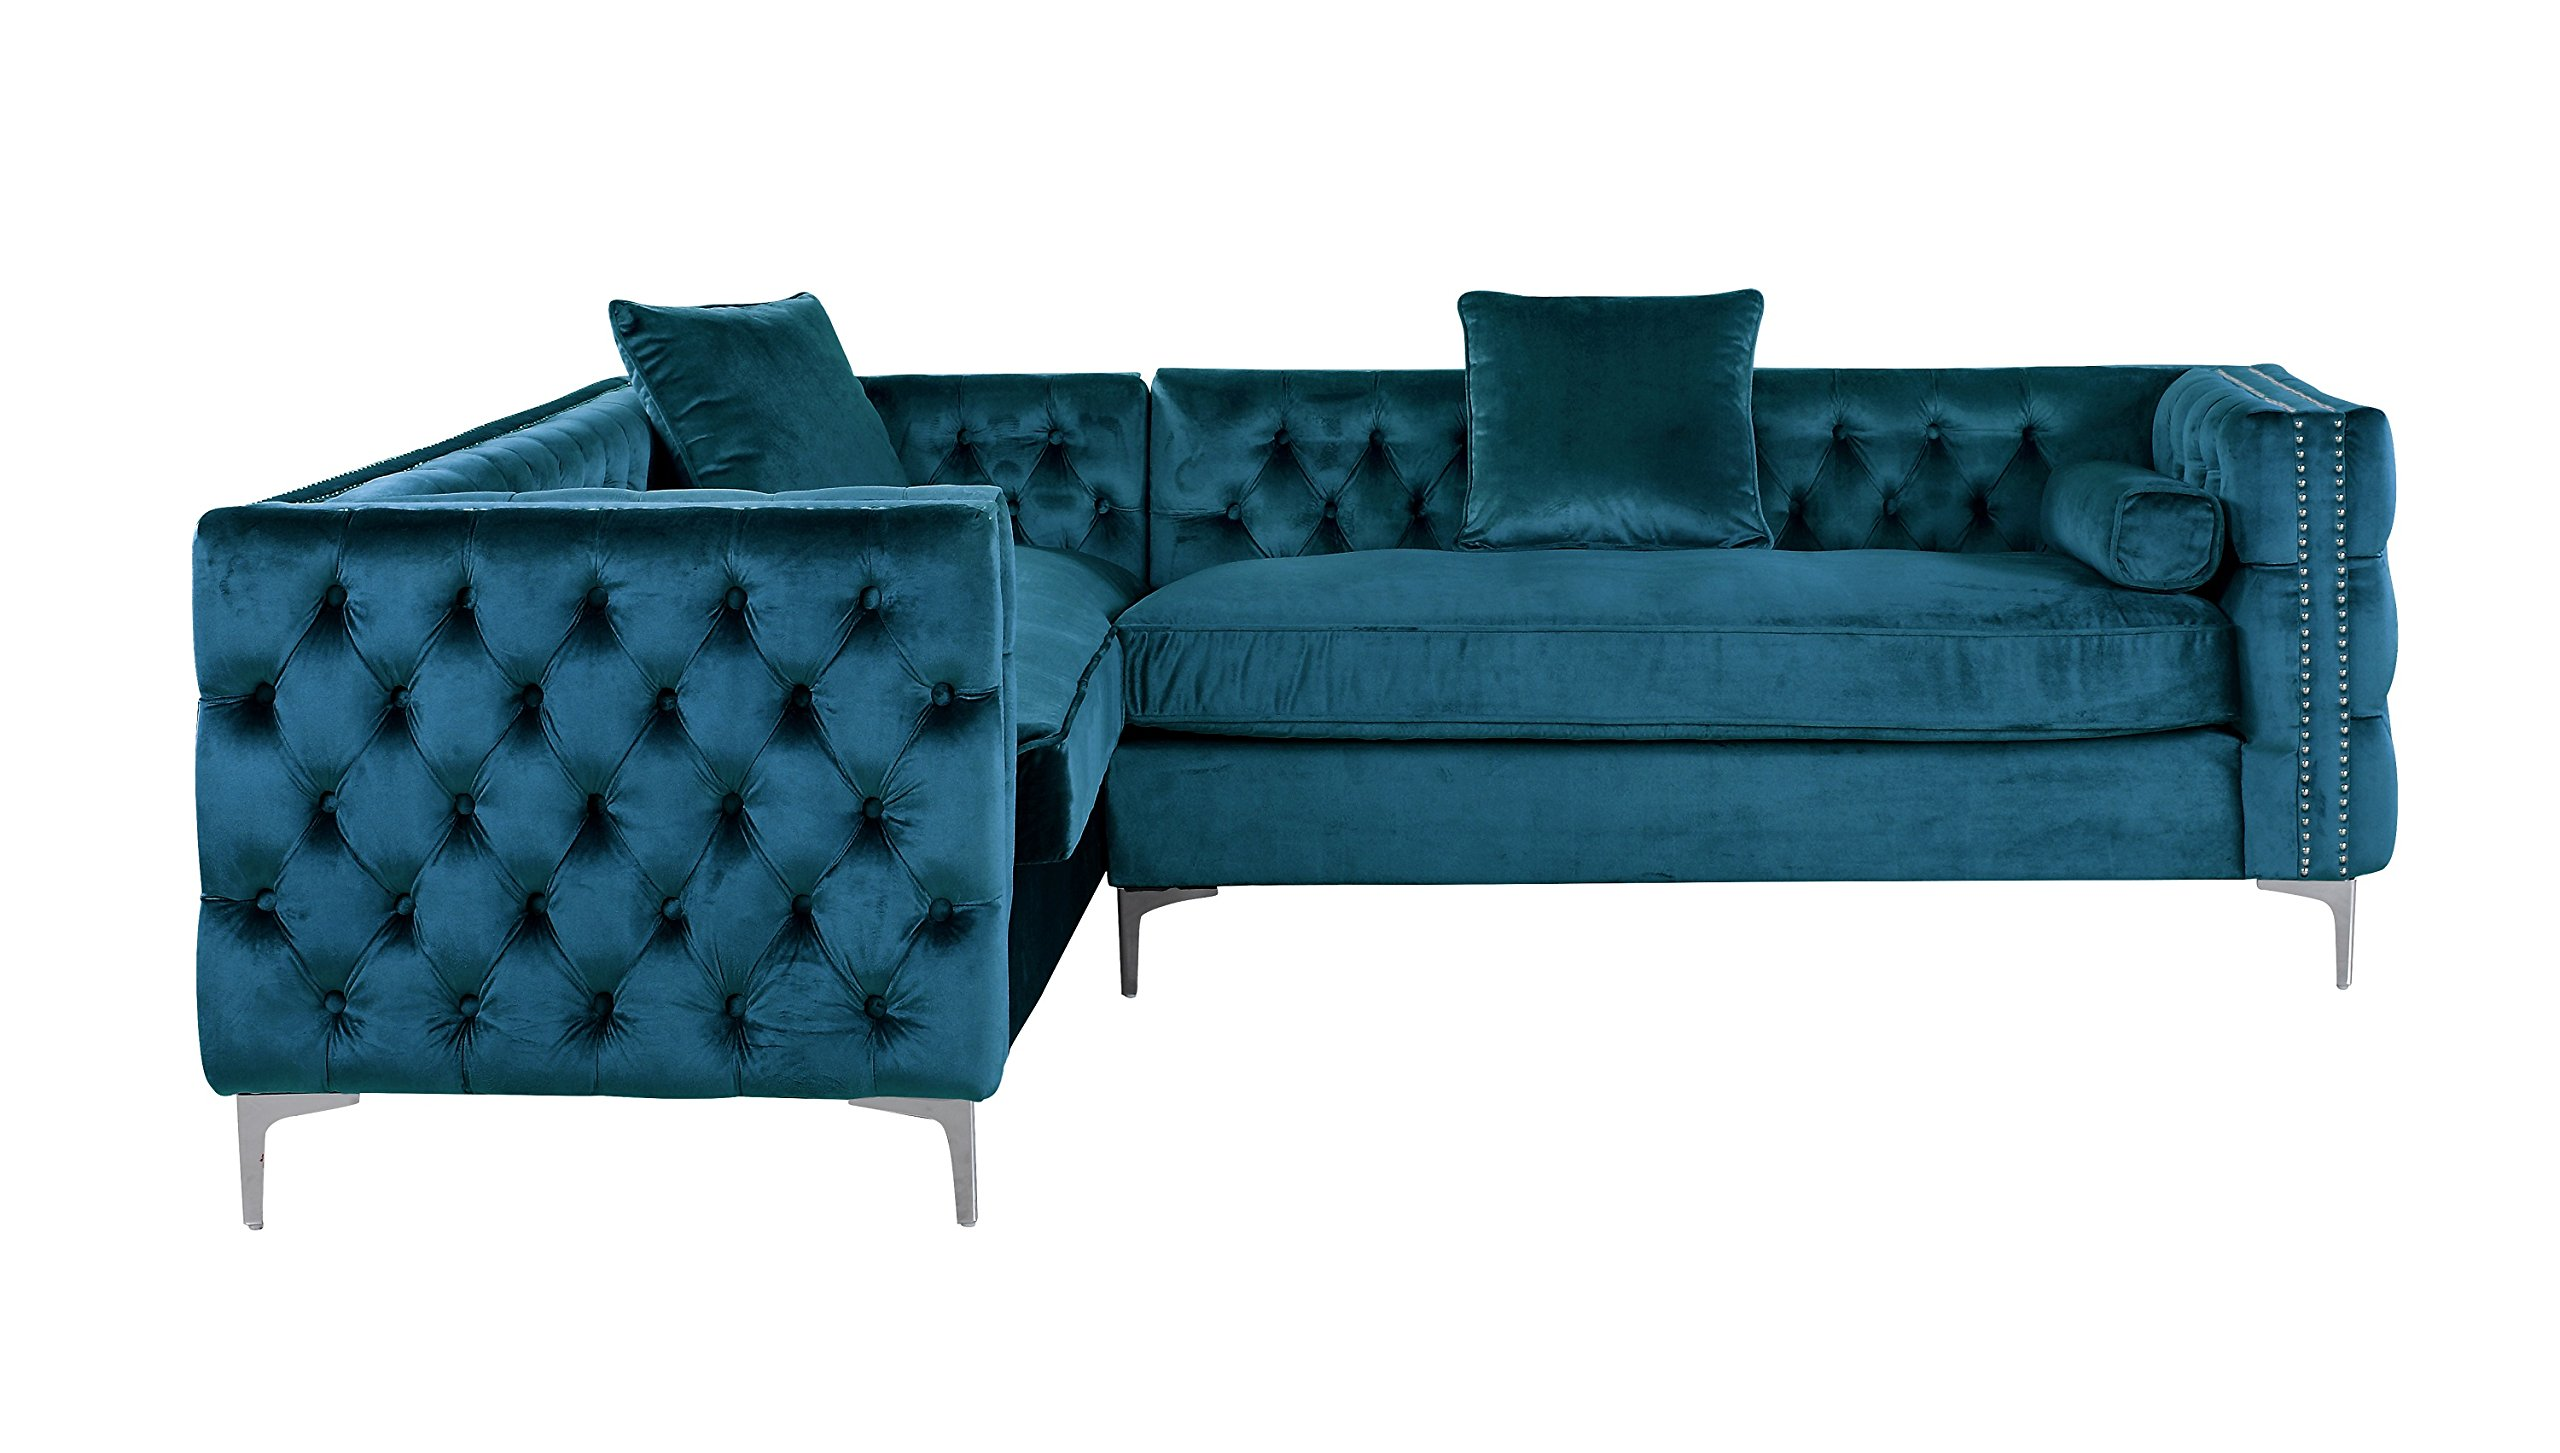 Iconic Home Mozart Elegant Velvet Modern Deeply Tufted with Silver Nailhead Trim Chrome Legs Left Facing Sectional Sofa, Teal - FABRIC: LUXURIOUS VELVET UPHOLSTERY – Expertly upholstered in premium quality velvet fabric –  The plush texture of this velvet creates a rich and luxurious feelRich velvet color DESIGN: STYLISH MODERN TRANSITIONAL LOOK – Sitting in between contemporary and traditional, modern transitional design provides tremendous aesthetic versatility to be used within virtually any interior décorDual silver nailhead trim accent COMFORT: PLUSH MULTI DENSITY CUSHIONING – Plush multi density foam fill allows for a soft yet supportive seat – You and your guests will relax in comfort and styleHigh density foam seating - sofas-couches, living-room-furniture, living-room - 81DFLVRbwIL -